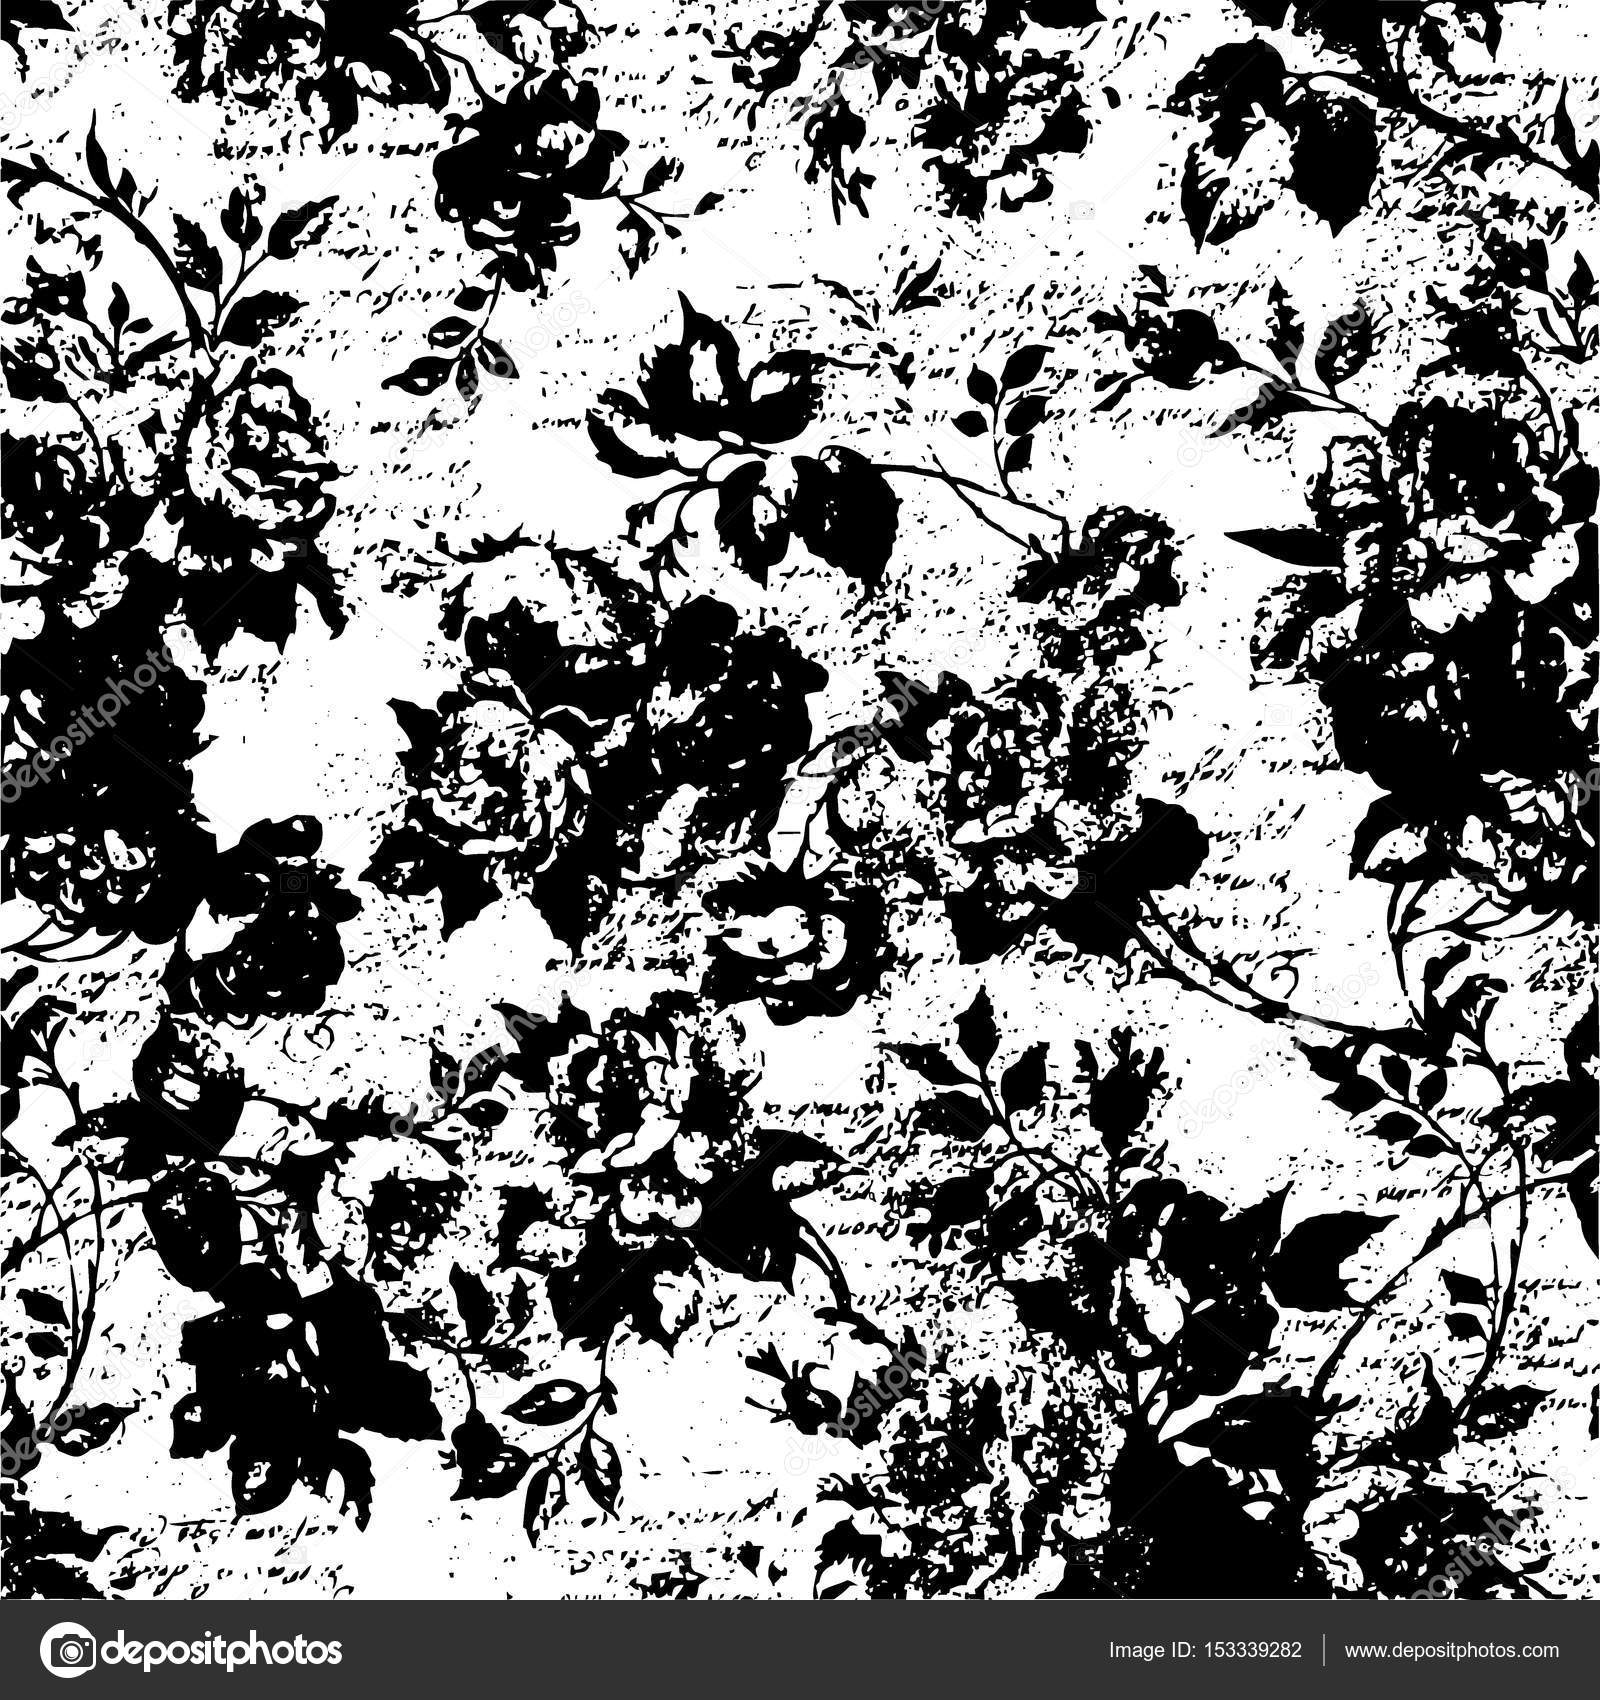 Old rose wallpaper vintage template shabby retro wall background black white illustrated texture